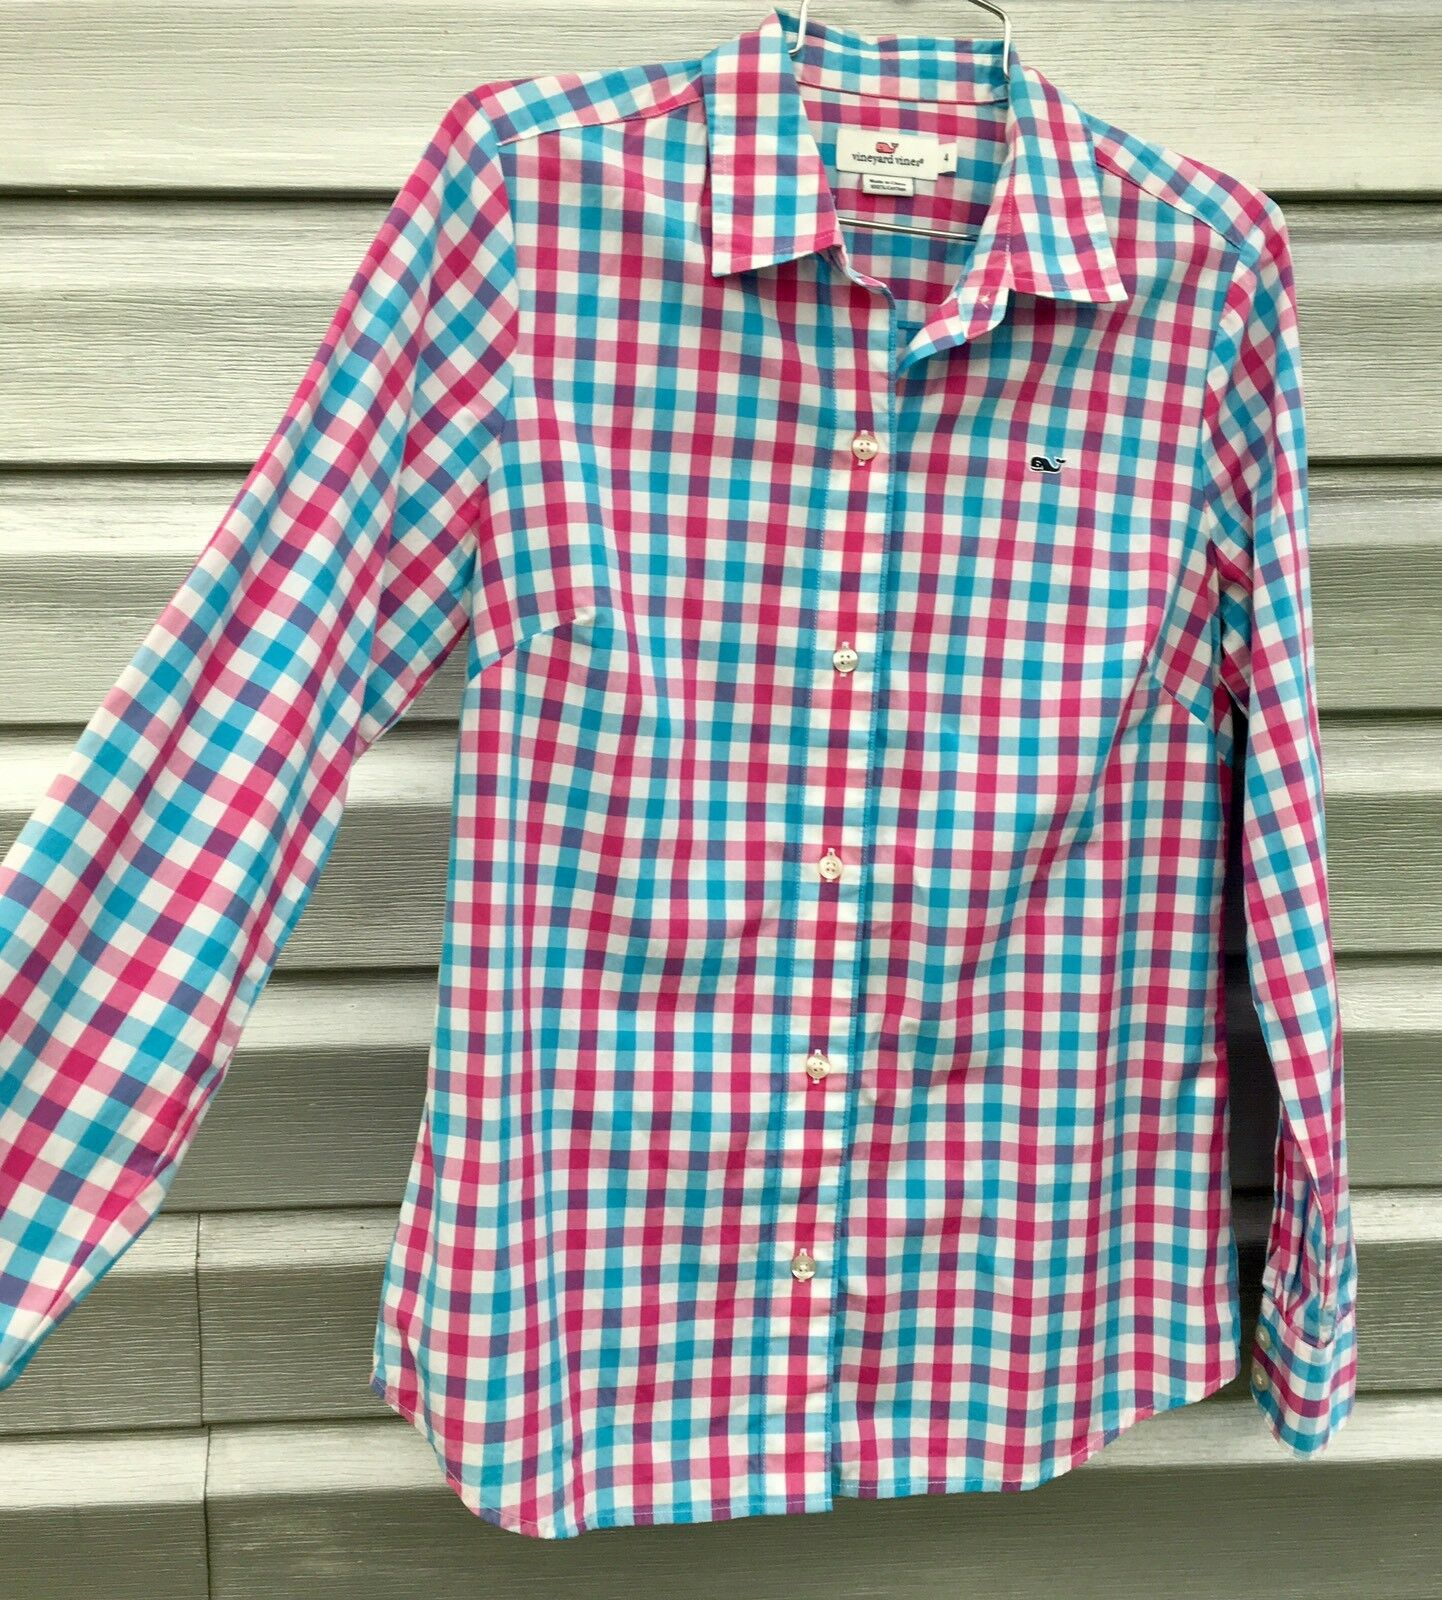 VINEYARD VINES Rosa Blau Long Sleeve Plaid Blouse Top